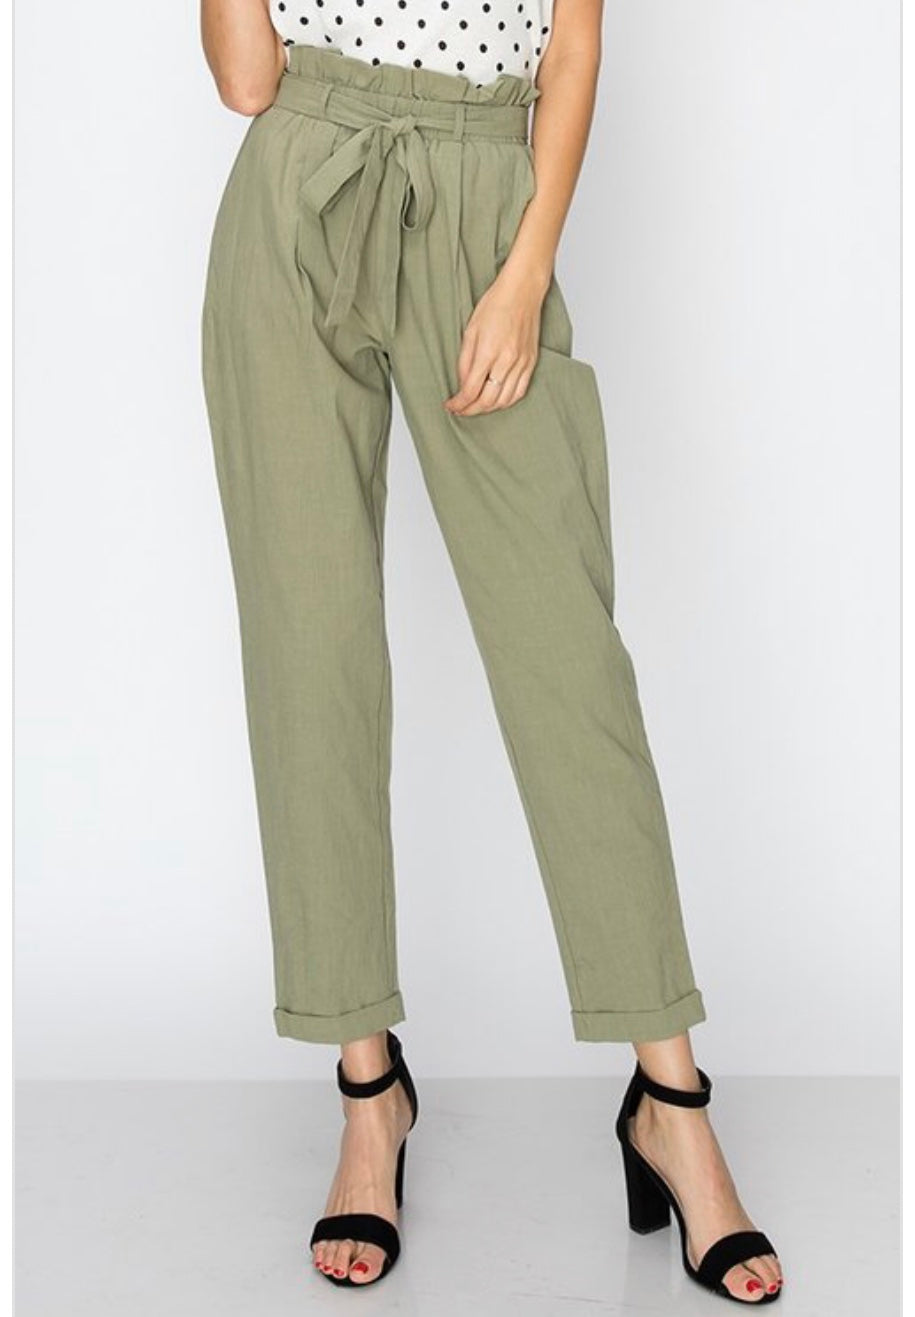 Army Green Waist Tie Pants